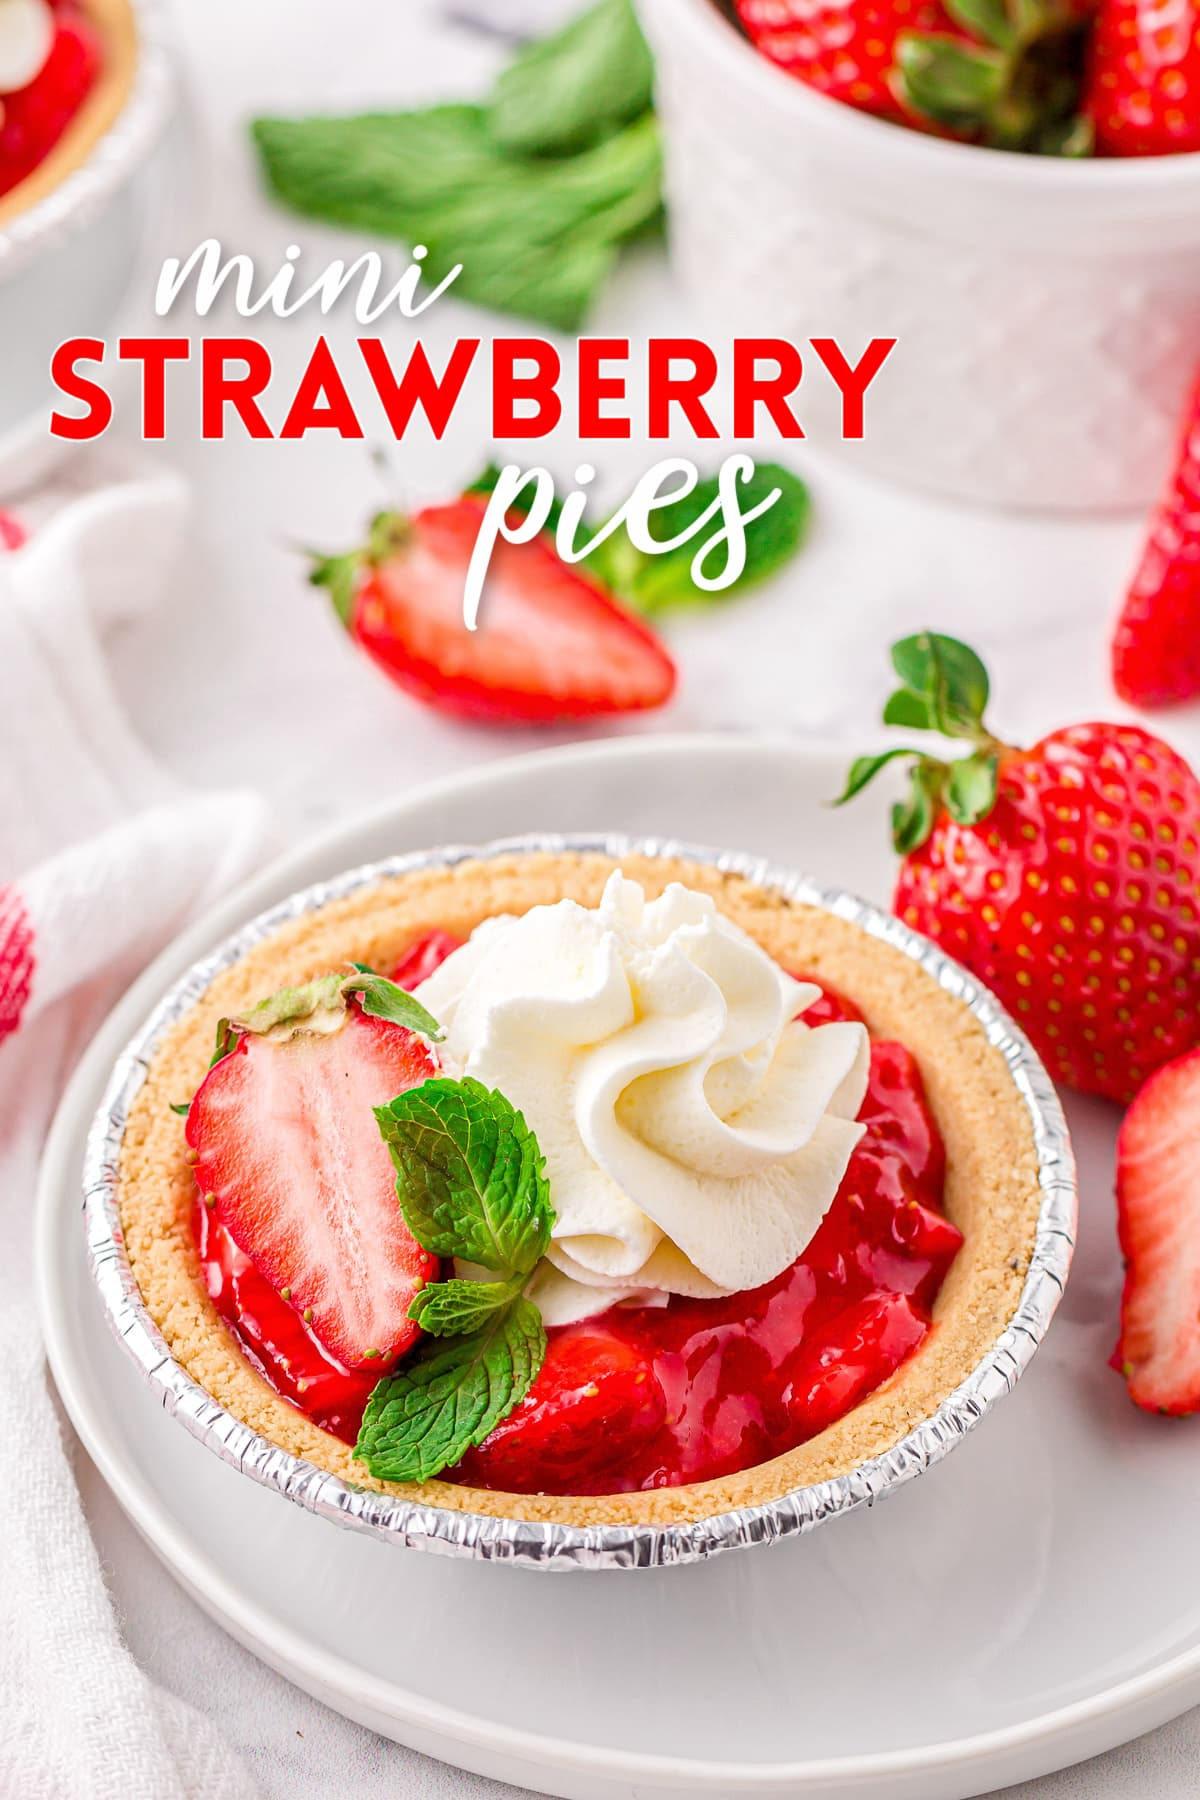 easy fresh strawberry pie recipe made in mini graham cracker crusts topped with whipped cream and a mint leaf. title overlay at top of image.